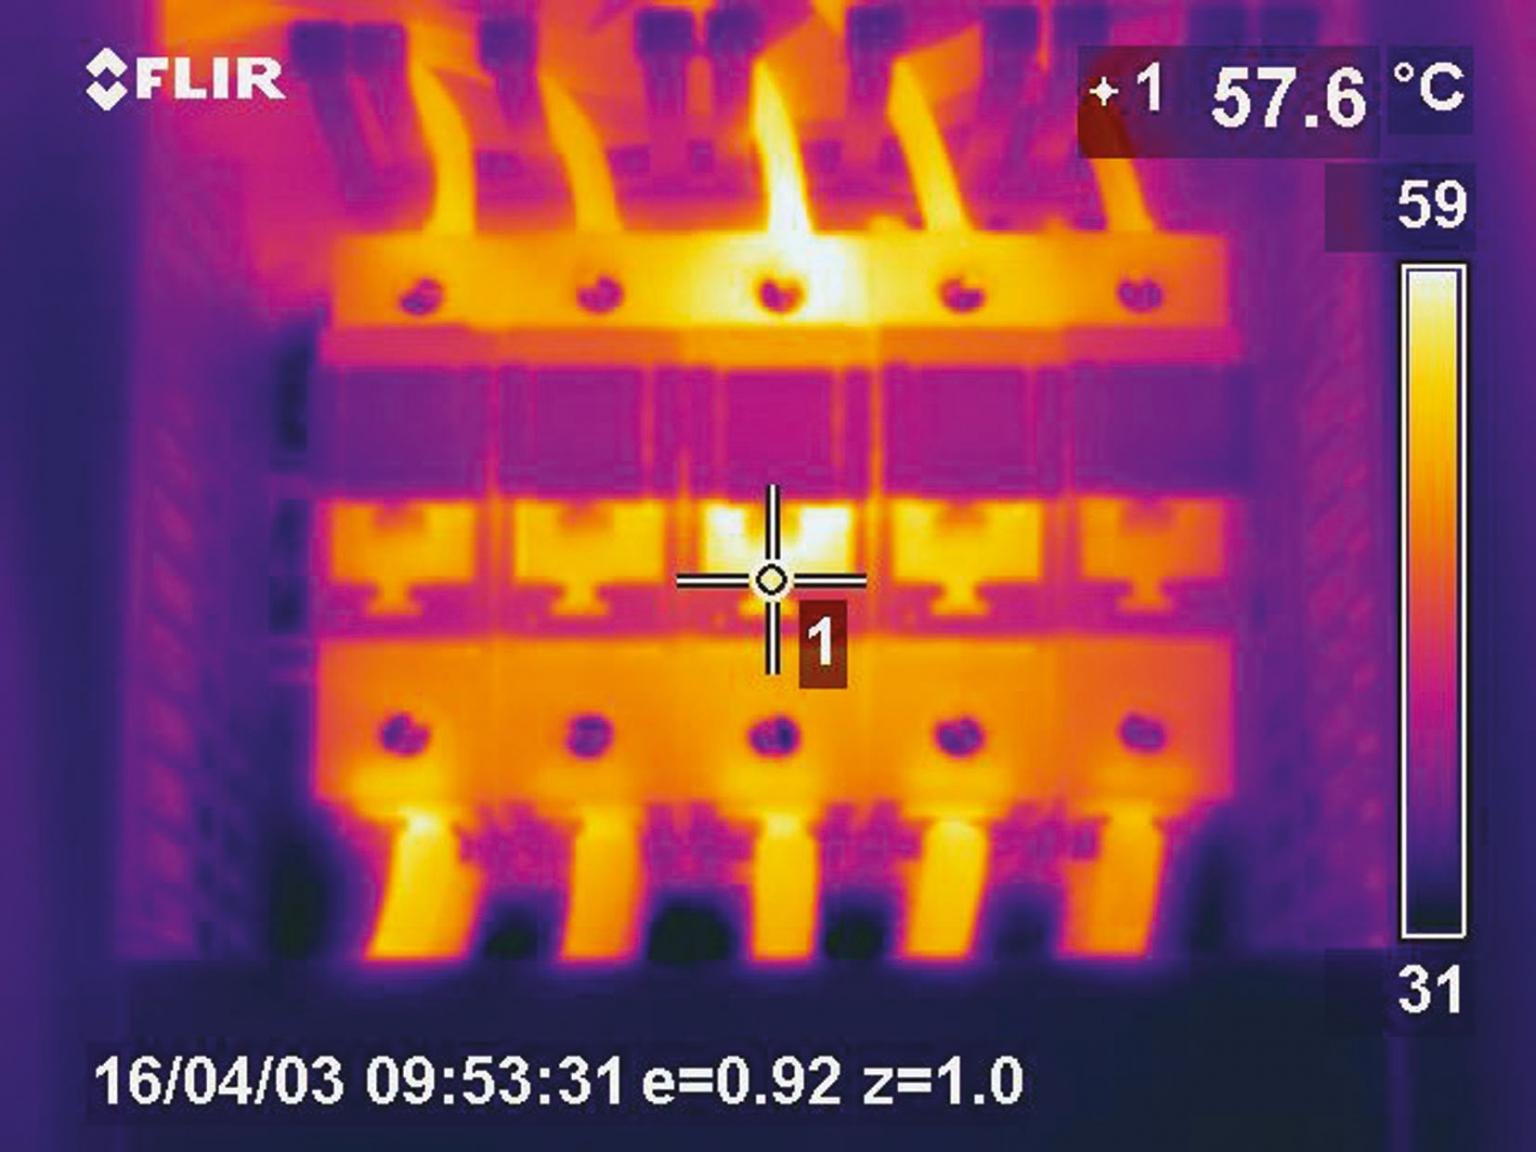 Electrical inspections and level detection of tanks are just a few infrared applications at BASF